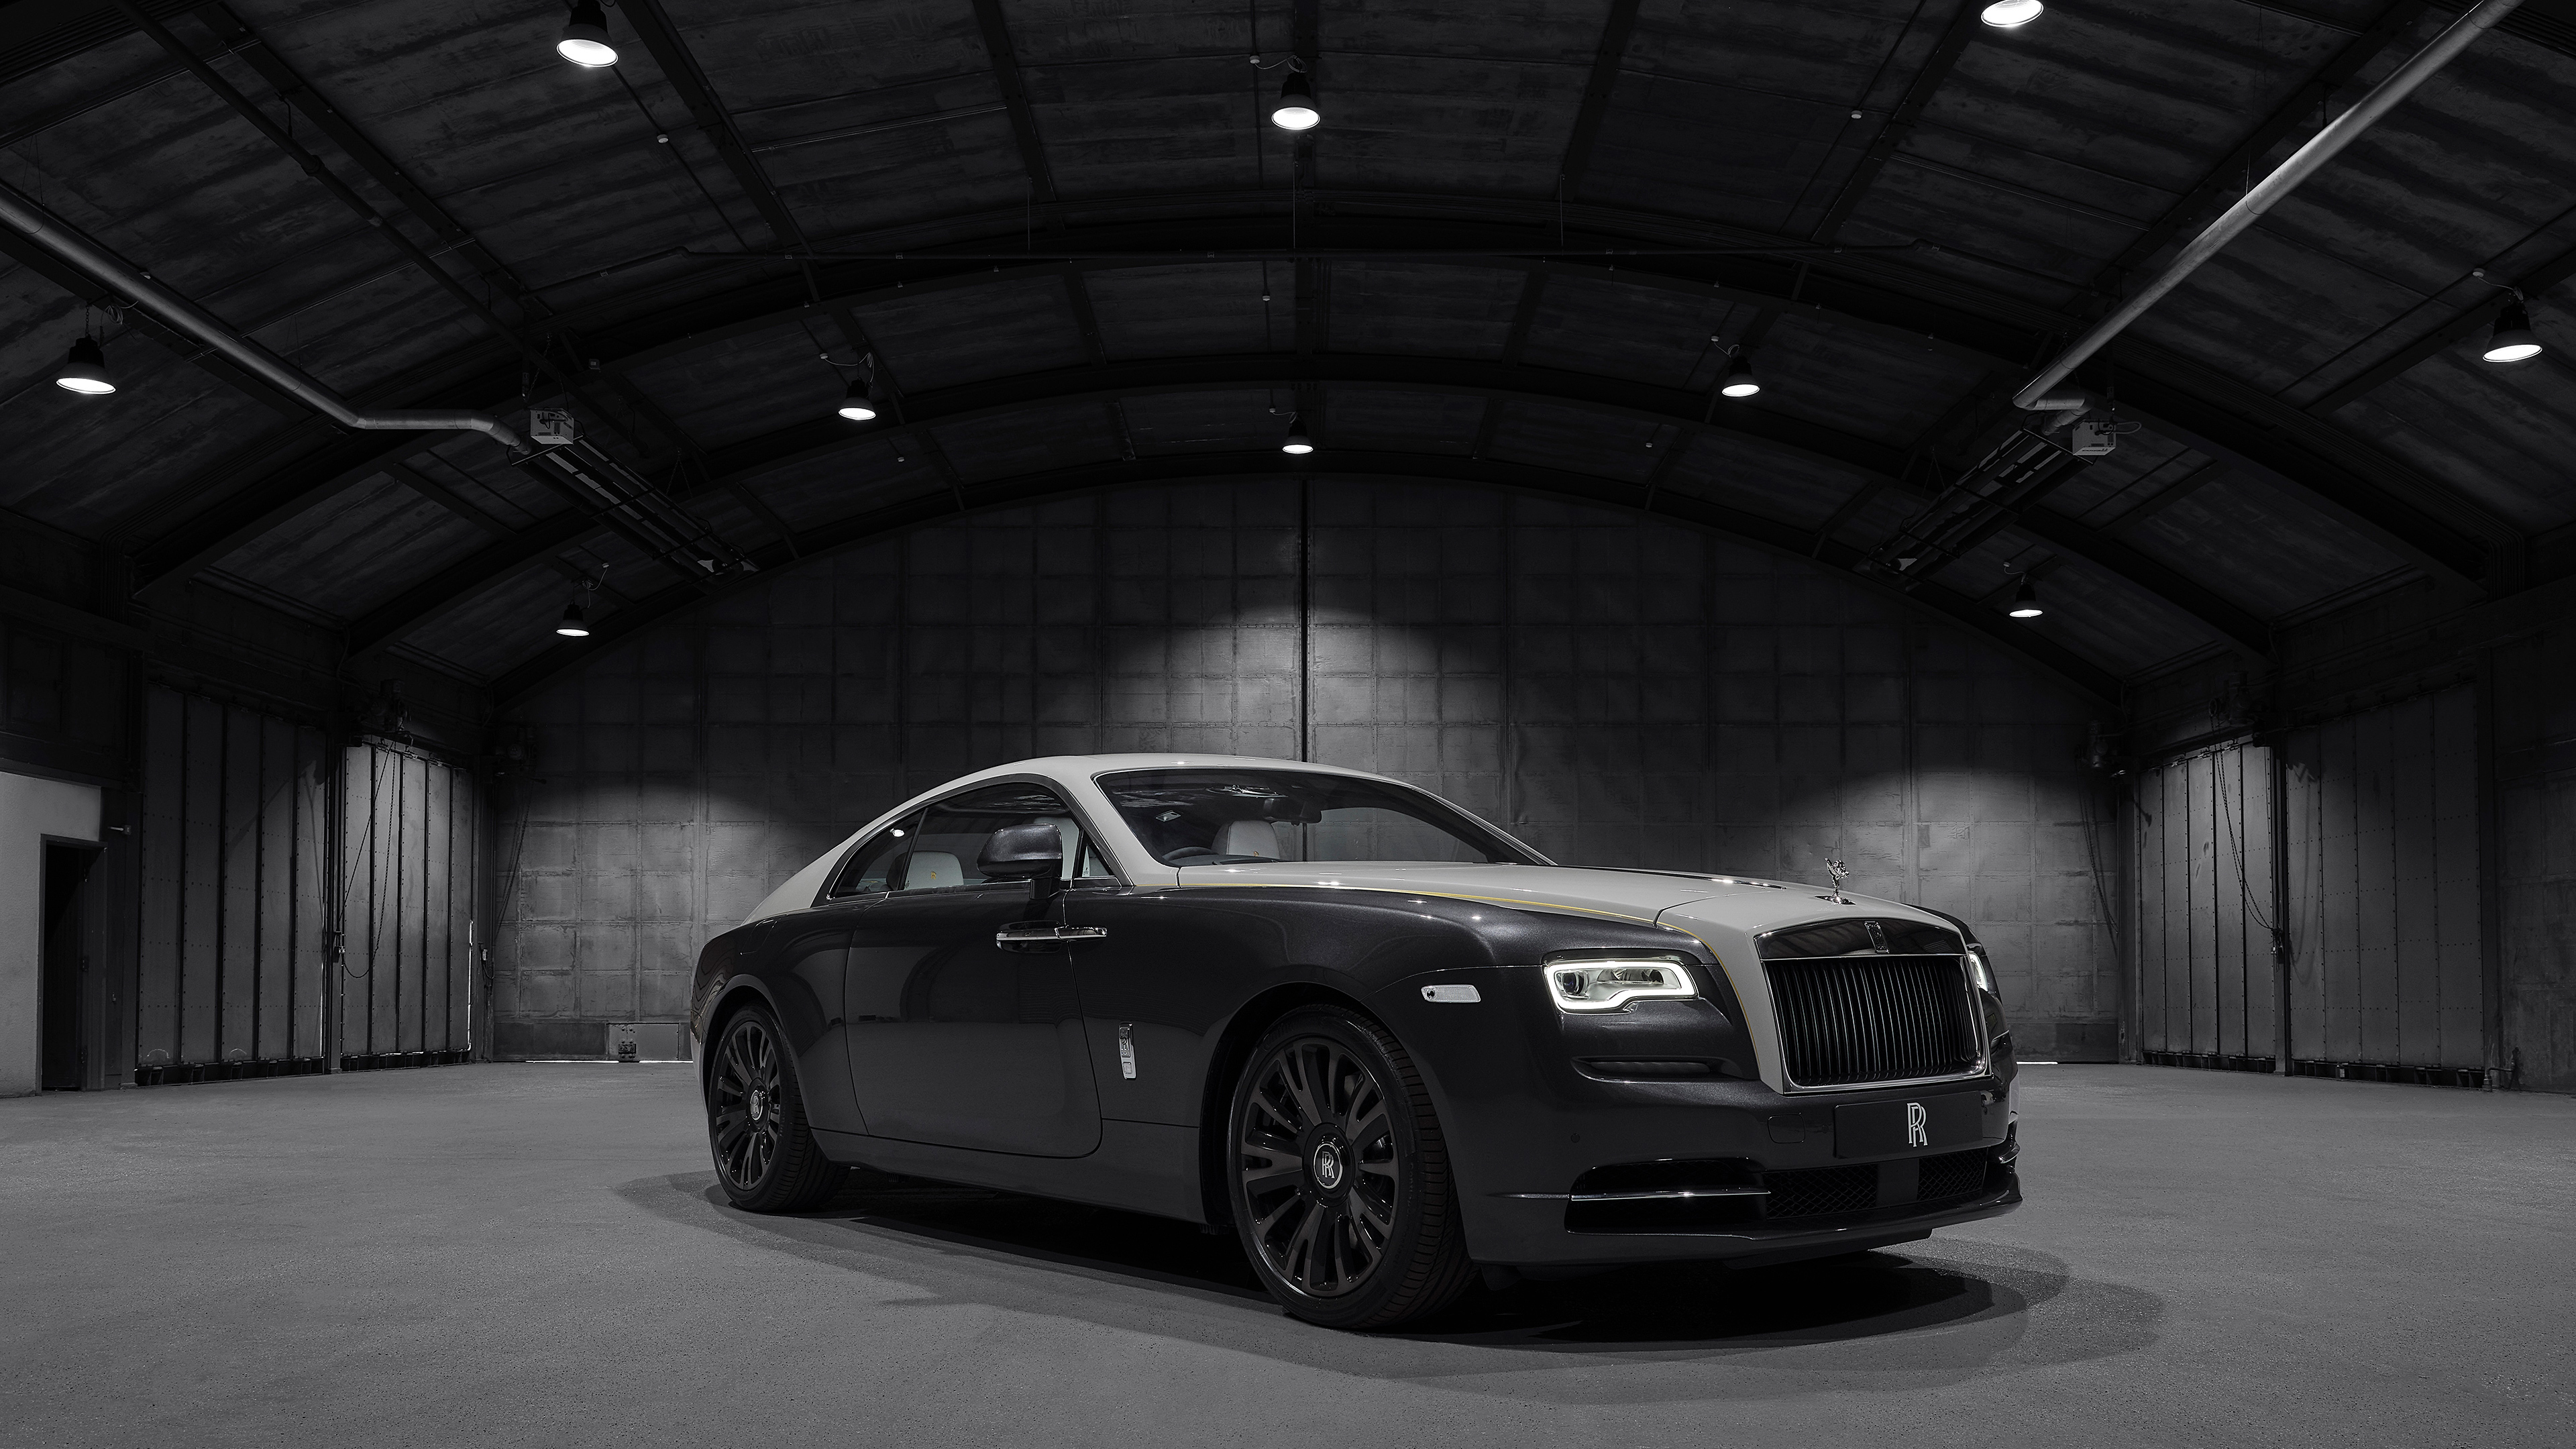 rolls royce wraith eagle viii 2019 4k 1560534243 - Rolls Royce Wraith Eagle VIII 2019 4k - rolls royce wraith wallpapers, rolls royce wallpapers, hd-wallpapers, cars wallpapers, 4k-wallpapers, 2019 cars wallpapers